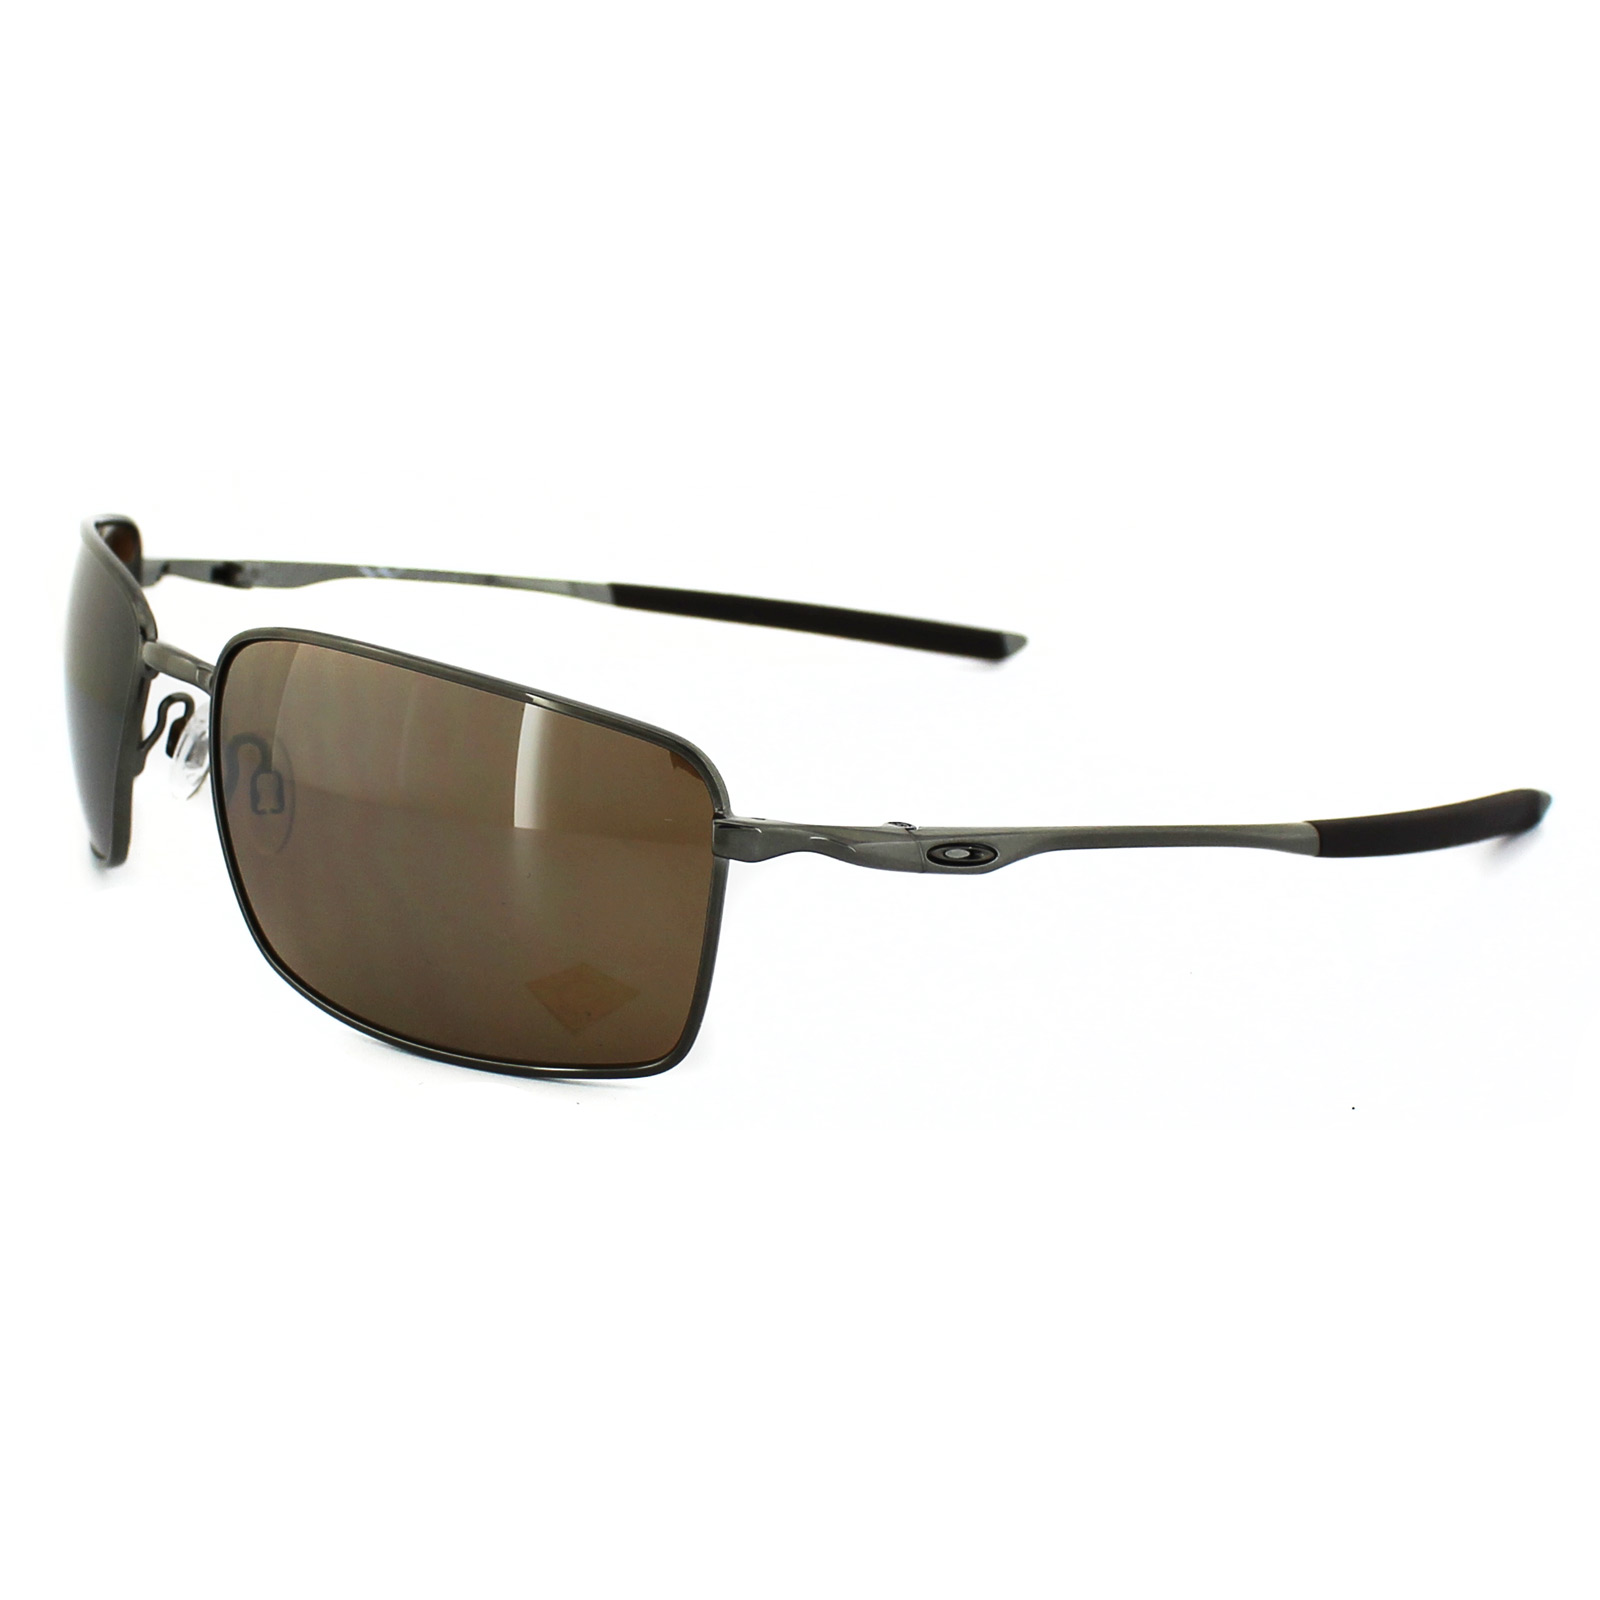 8b73eb98a52 Sentinel Oakley Sunglasses Square Wire OO4075-06 Tungsten Tungsten Iridium  Polarized